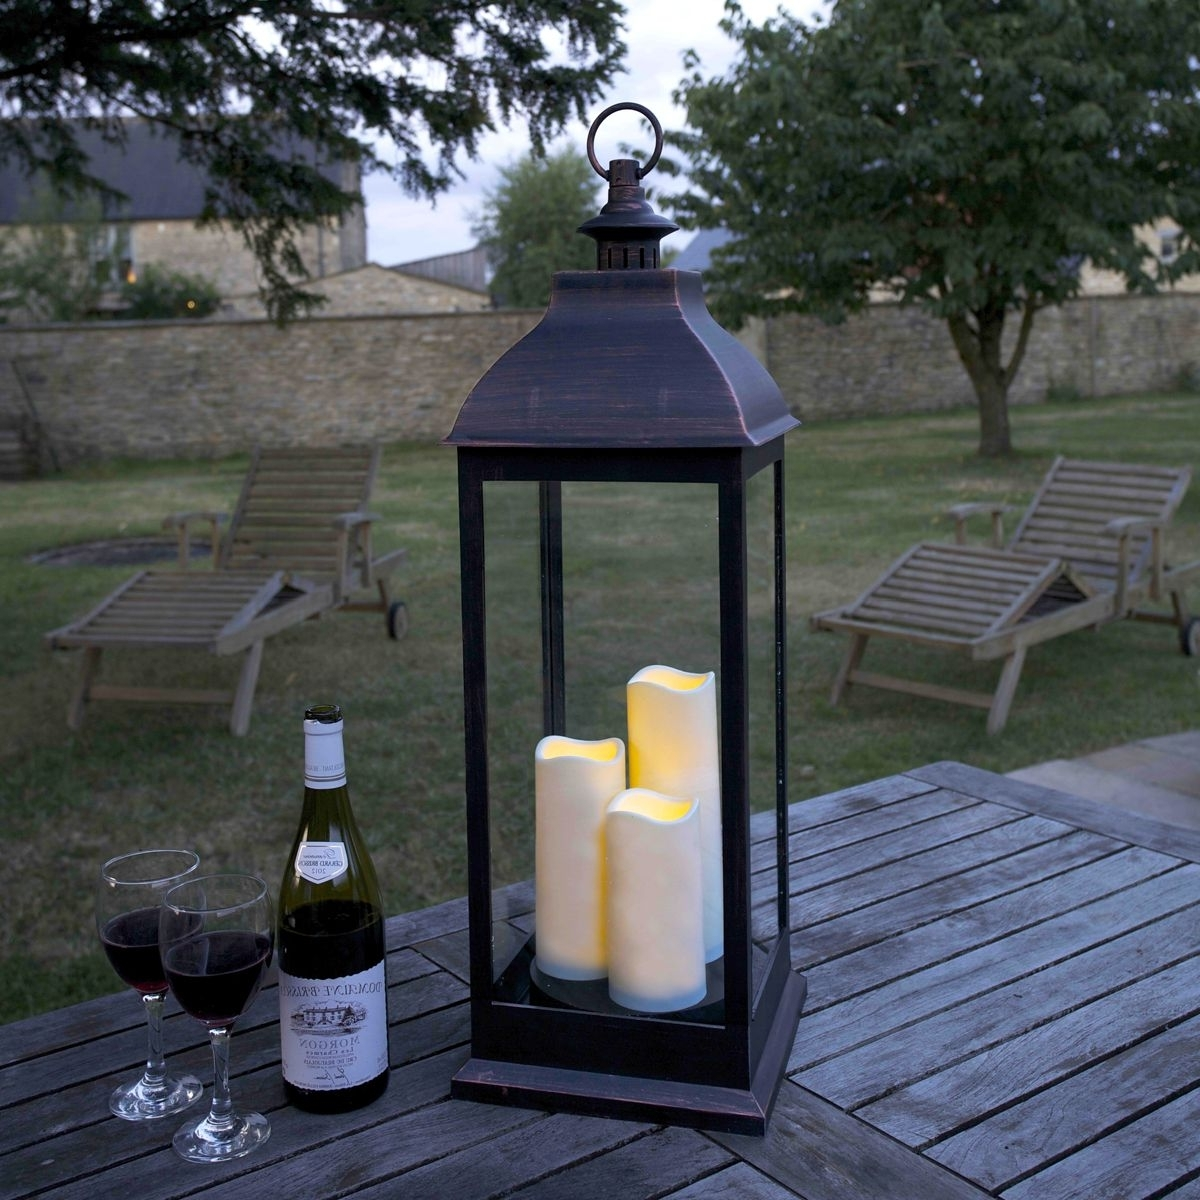 2018 Outdoor Lanterns With Battery Operated With Battery Operated Candle Lanterns – Image Antique And Candle (View 5 of 20)